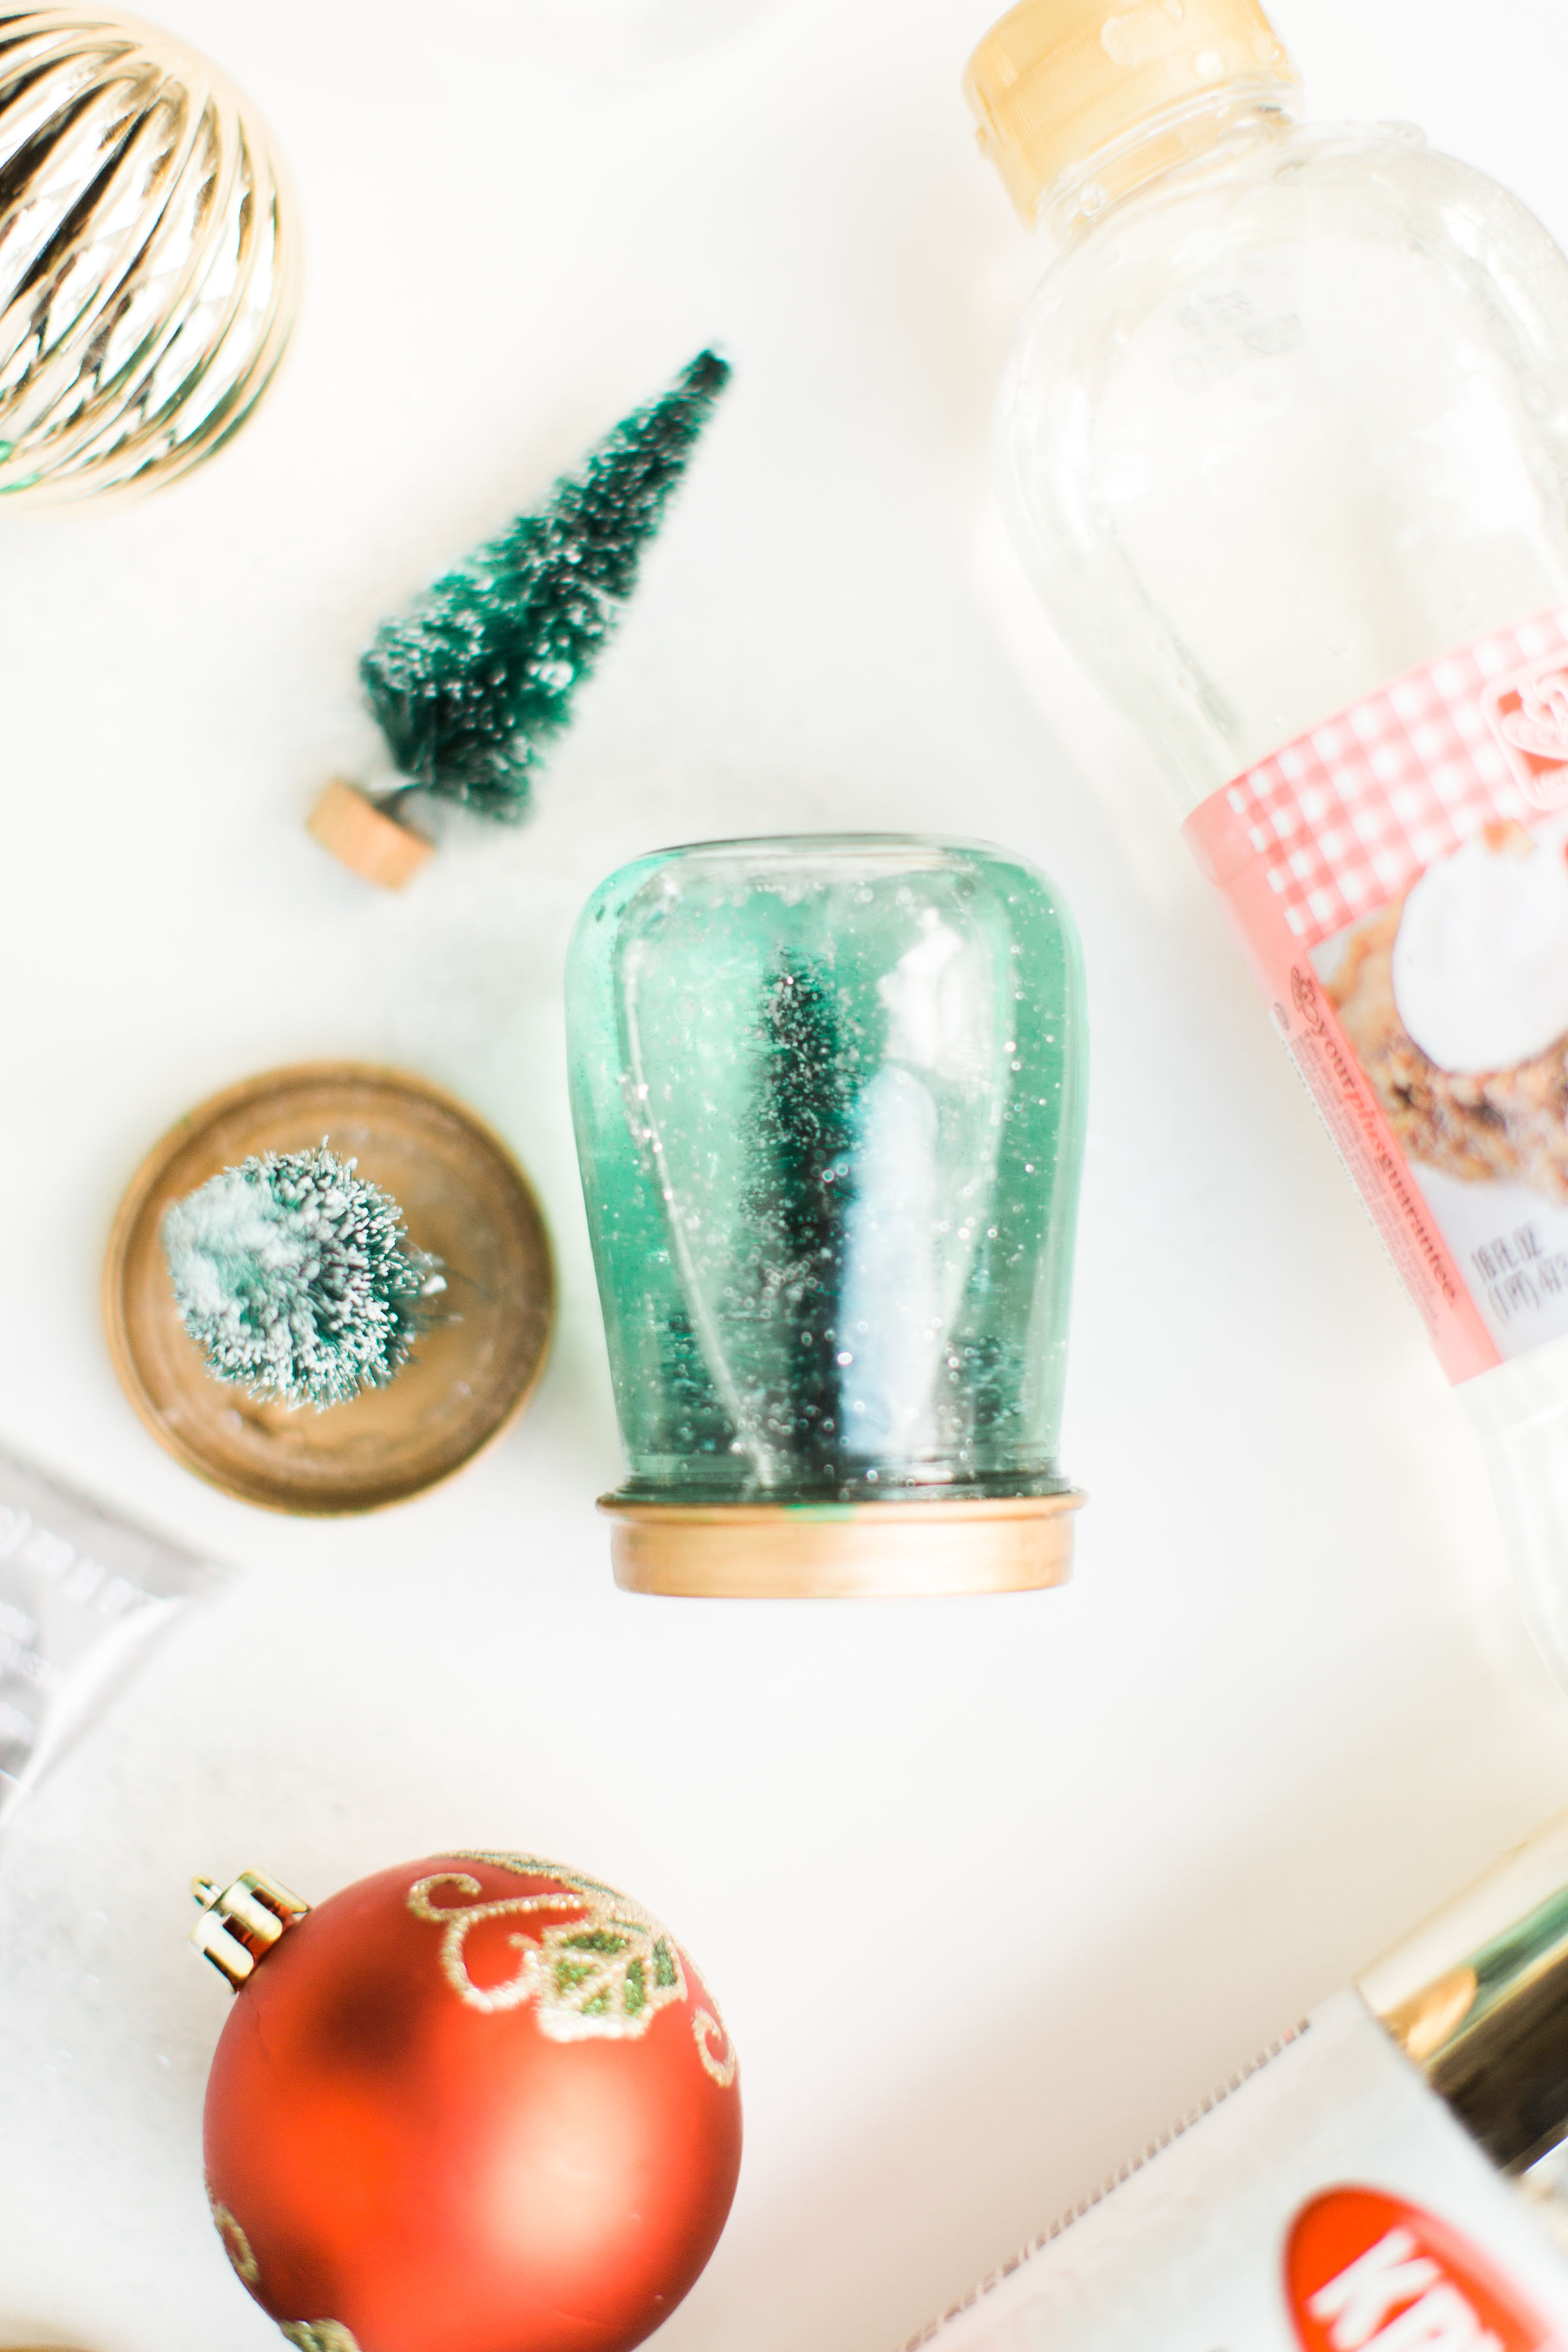 Glitter DIY snow globes are fun to make, are a great craft to do with kids, and double as a calm down sensory bottle for a little quiet time on days when the whole family is going a little stir crazy! Click through for the details. #kidsdiy #kidscraft #diysnowglobes #howtomakesnowglobes #sensorybottles #sensoryglobes #wintercraft #christmas #christmasdiy #christmascraft | glitterinc.com | @glitterinc